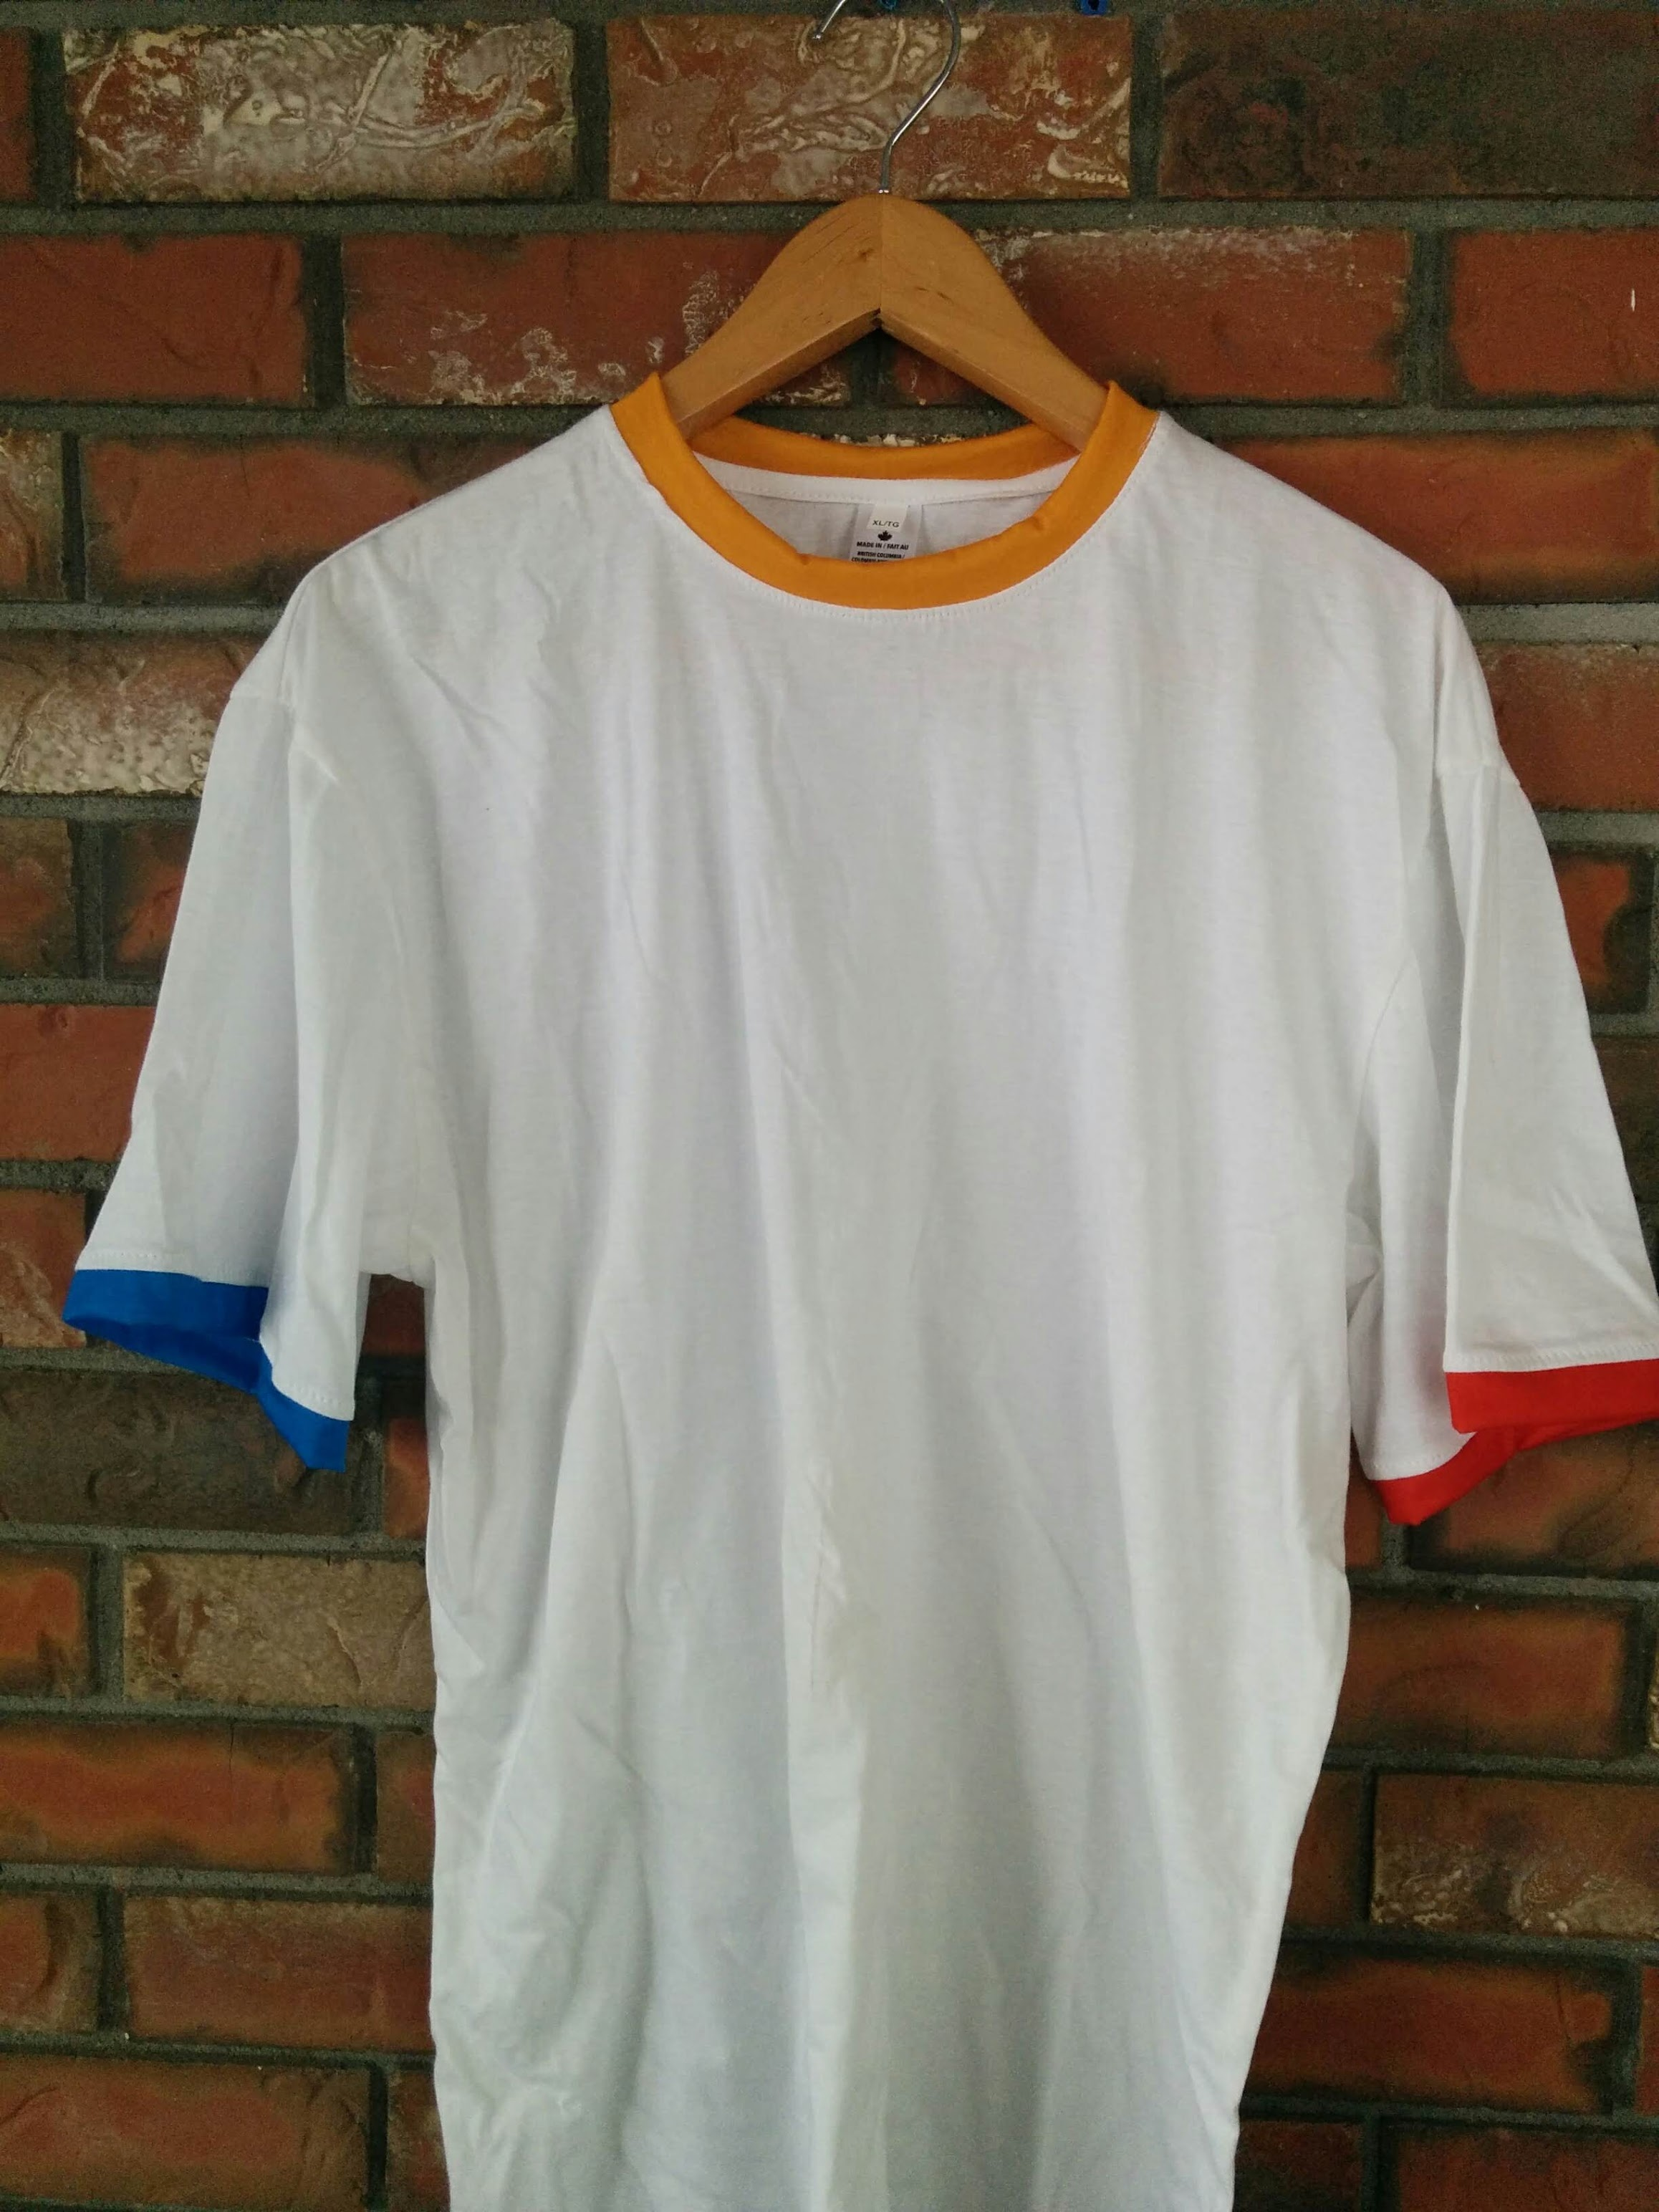 Ringer T-shirt with custom color collar and cuffs